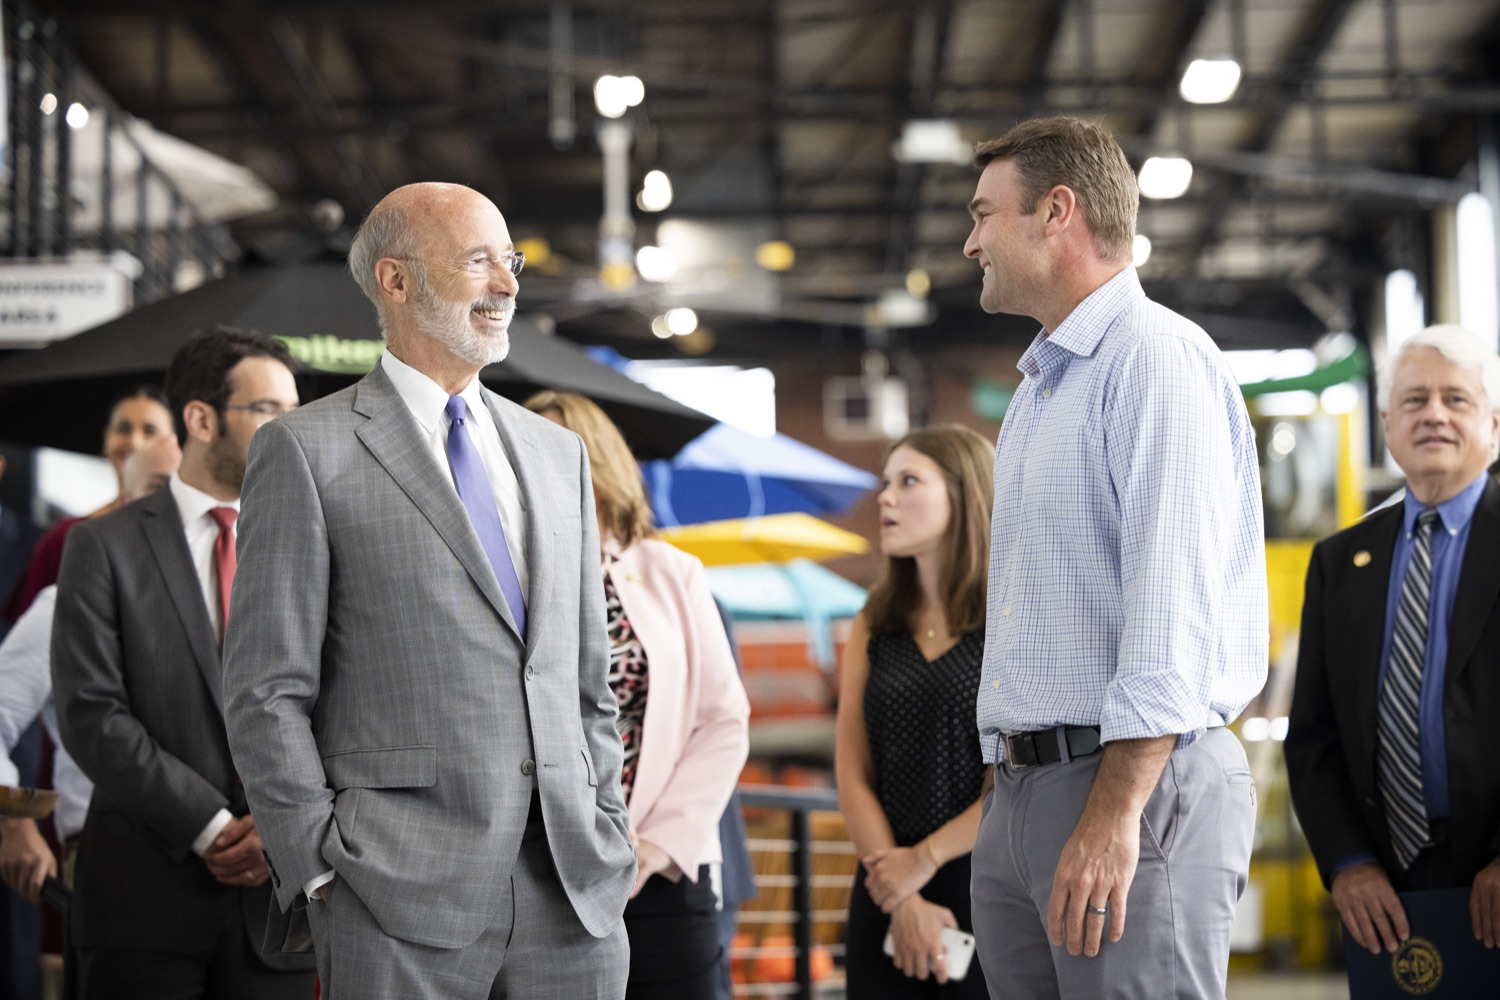 """<a href=""""https://filesource.wostreaming.net/commonwealthofpa/photo/18941_gov_economicDevelopment_dz_003.jpg"""" target=""""_blank"""">⇣Download Photo<br></a>Keith Caldwell, Partner  Factory LLC giving Pennsylvania Governor Tom Wolf a tour of Factory LLC.  Governor Tom Wolf today visited Factory LLC in Bethlehem to tour the facility and highlight the importance of investing in Pennsylvanias start-up companies. During the visit, he met with companies affiliated with Factory, including Stuffed Puffs®, which received a $1 million funding proposal from the commonwealth in 2019 to expand its manufacturing operations and create jobs, Mikeys®, Pipcorn®, Honey Stinger®, and ROAR® Organic. Bethlehem, PA  July 19, 2021"""